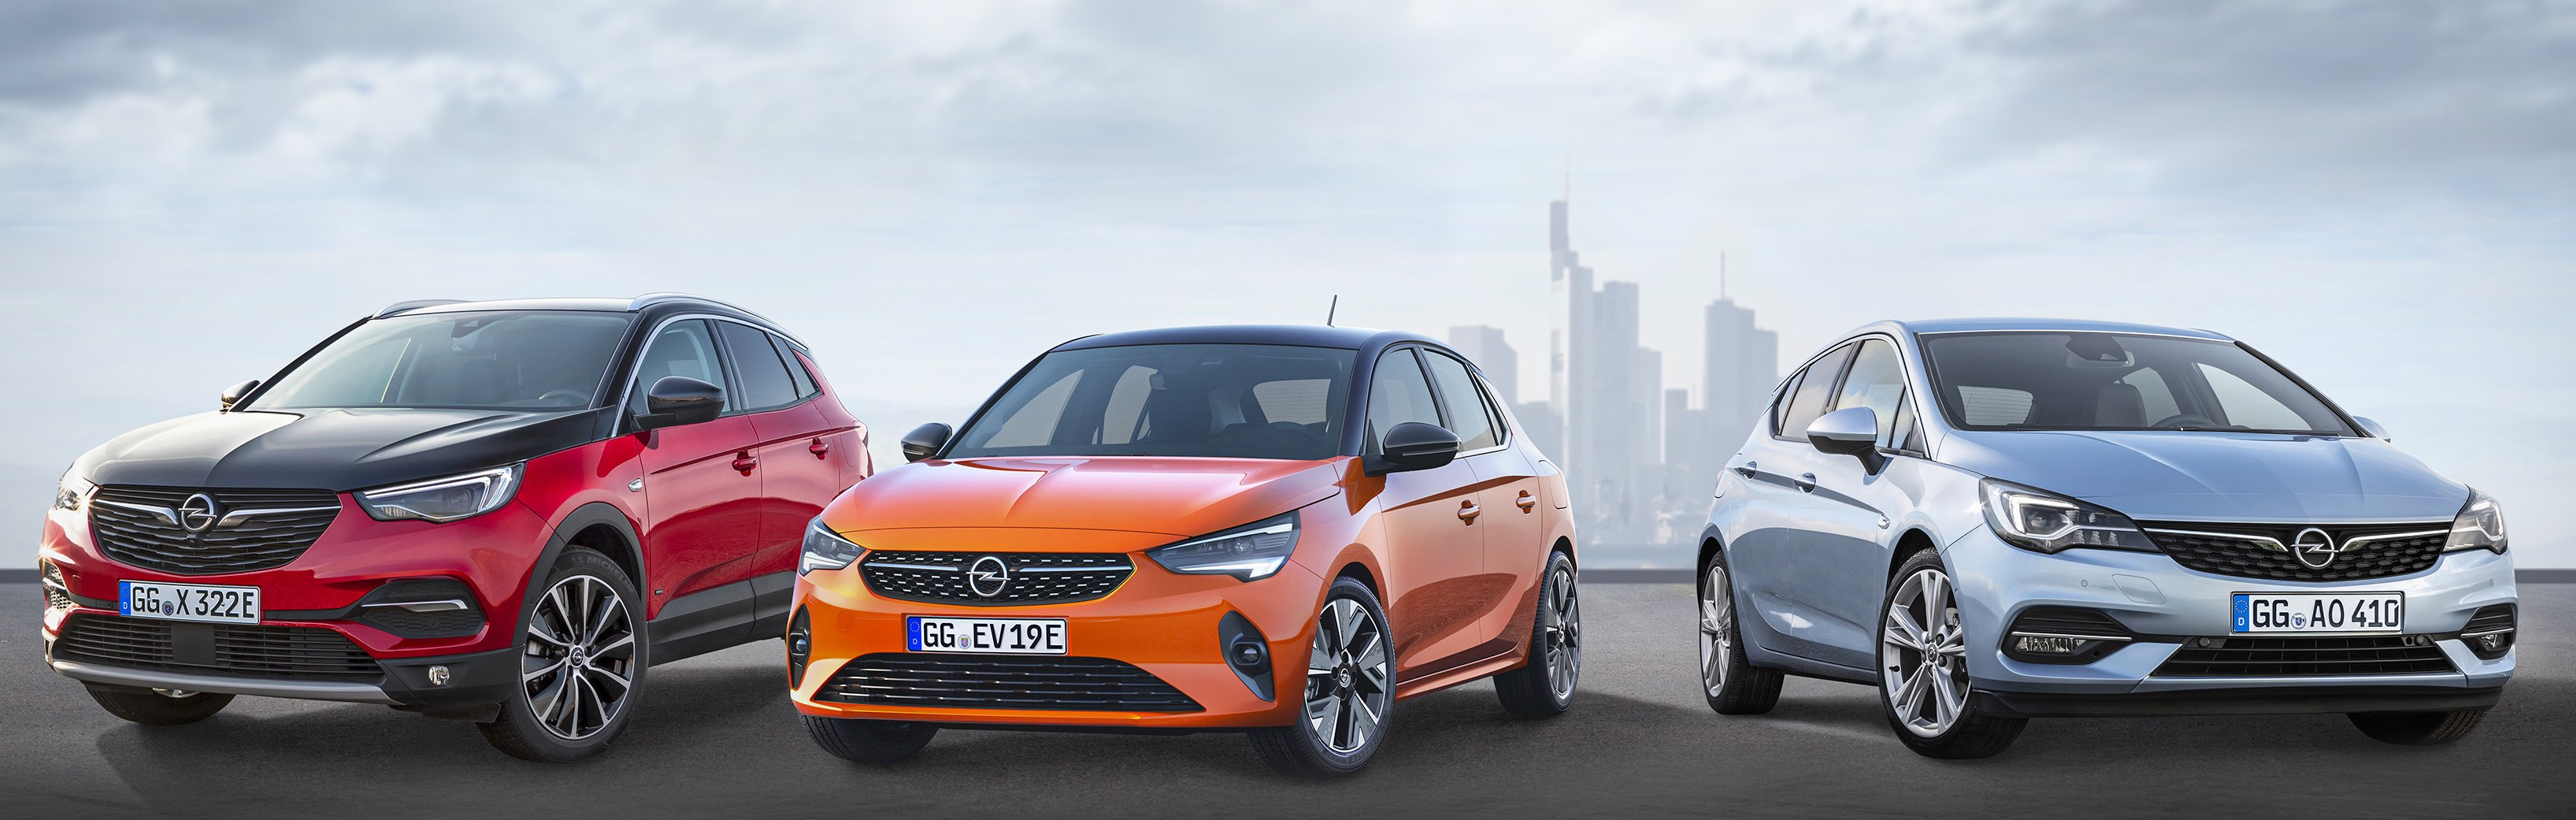 Opel launches many new models at major motor show